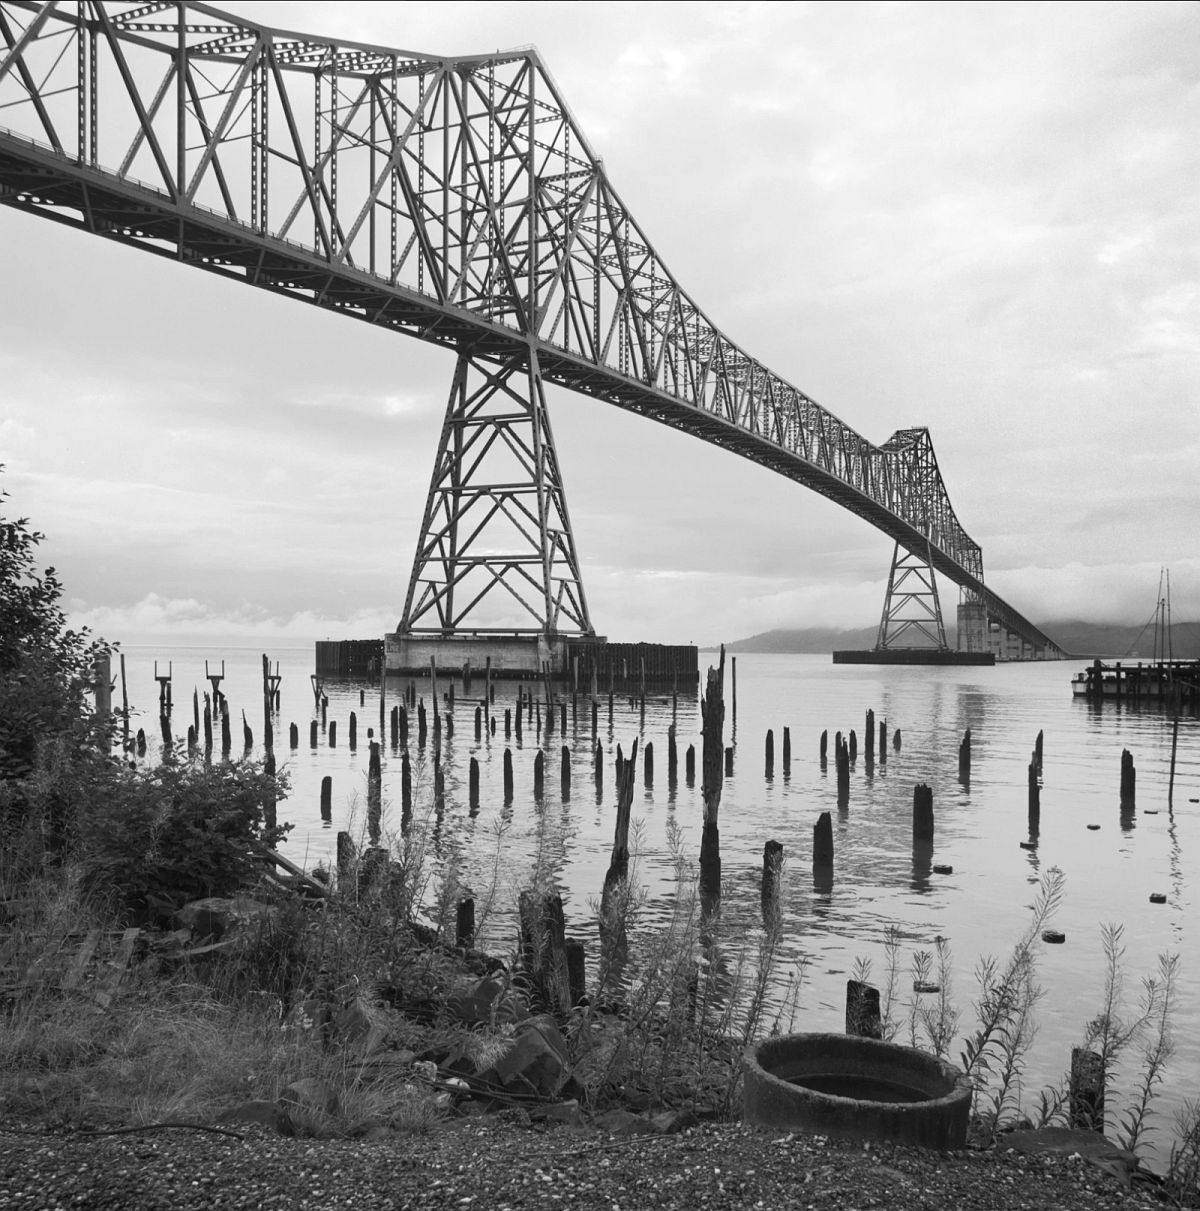 Astoria Bridge, Columbia River, Astoria, Oregon - Point Elice, Washington, 1968